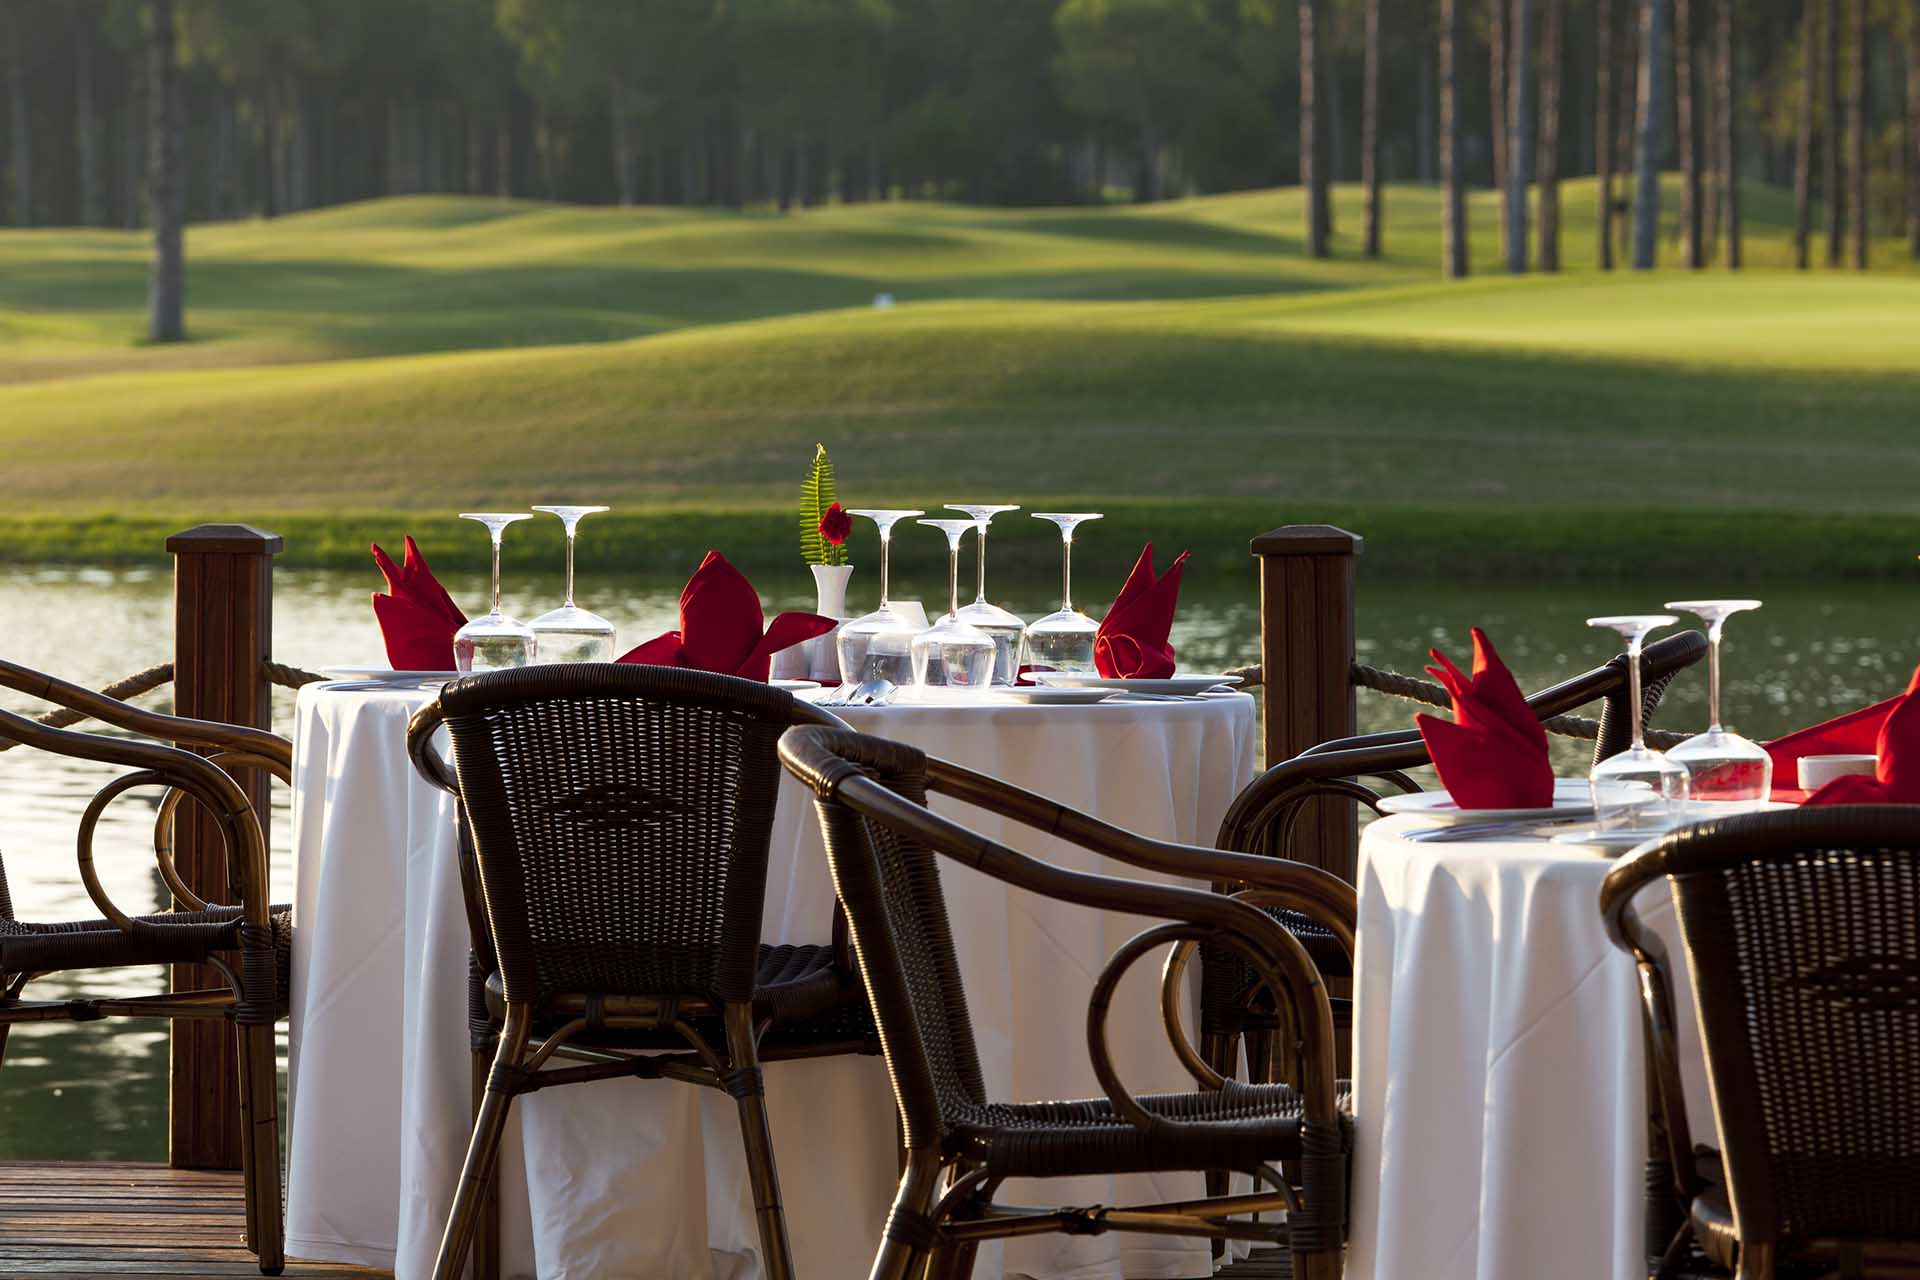 White linen tables overlooking a golf course